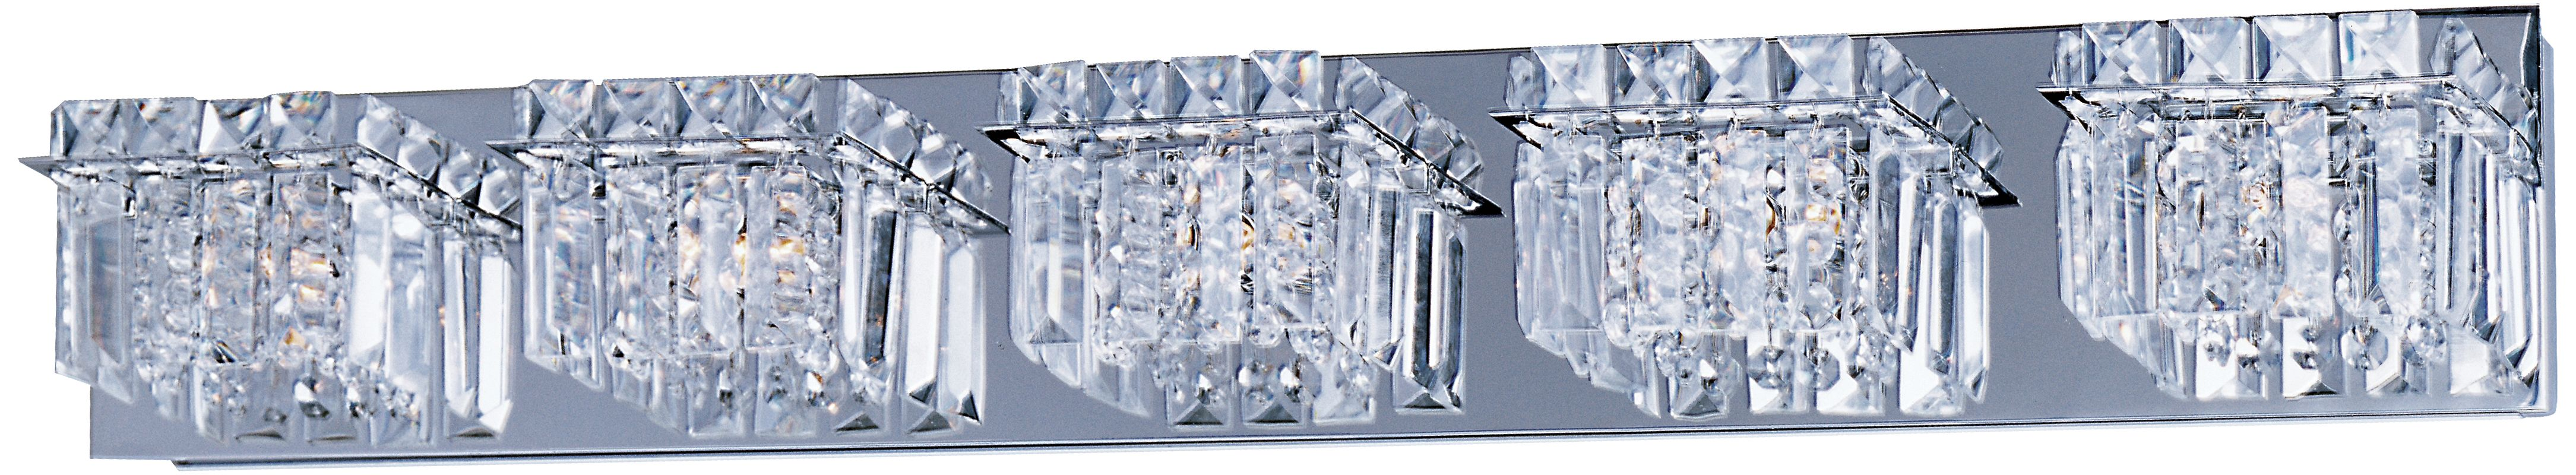 ET2 E23255-20PC Polished Chrome Contemporary Bangle Bathroom Light Sale $438.00 ITEM: bci2099837 ID#:E23255-20PC UPC: 845094045359 :